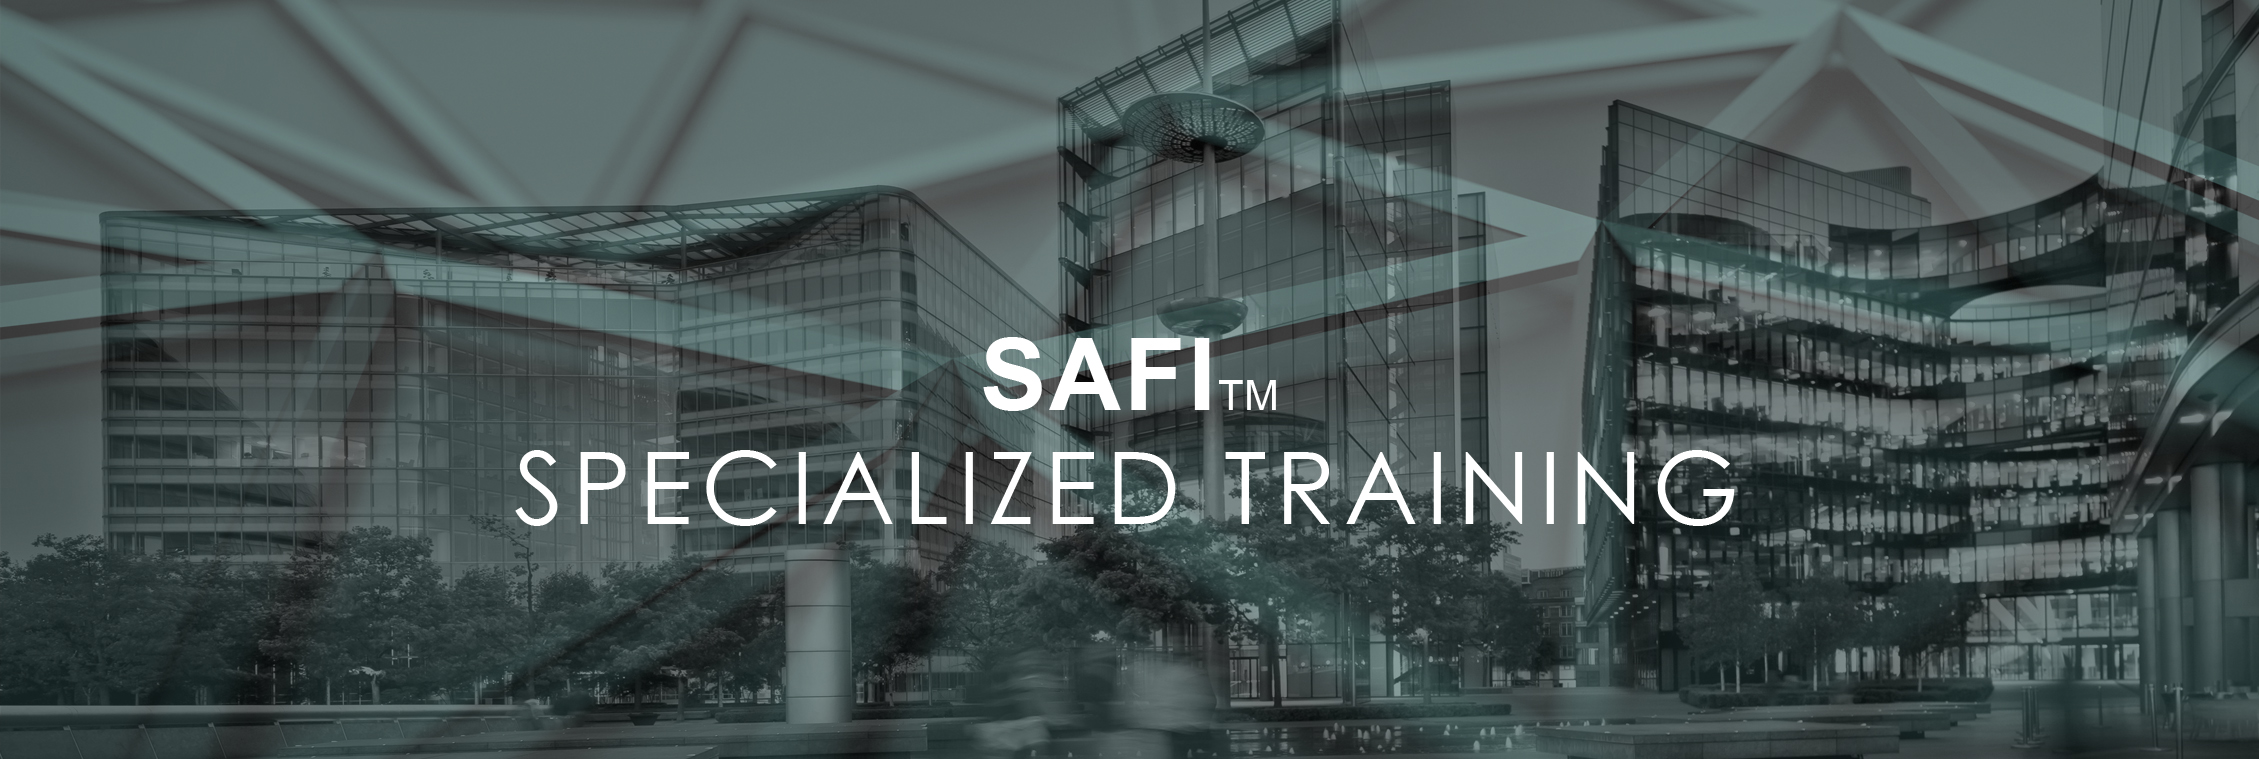 SAFI-TRAINING-3